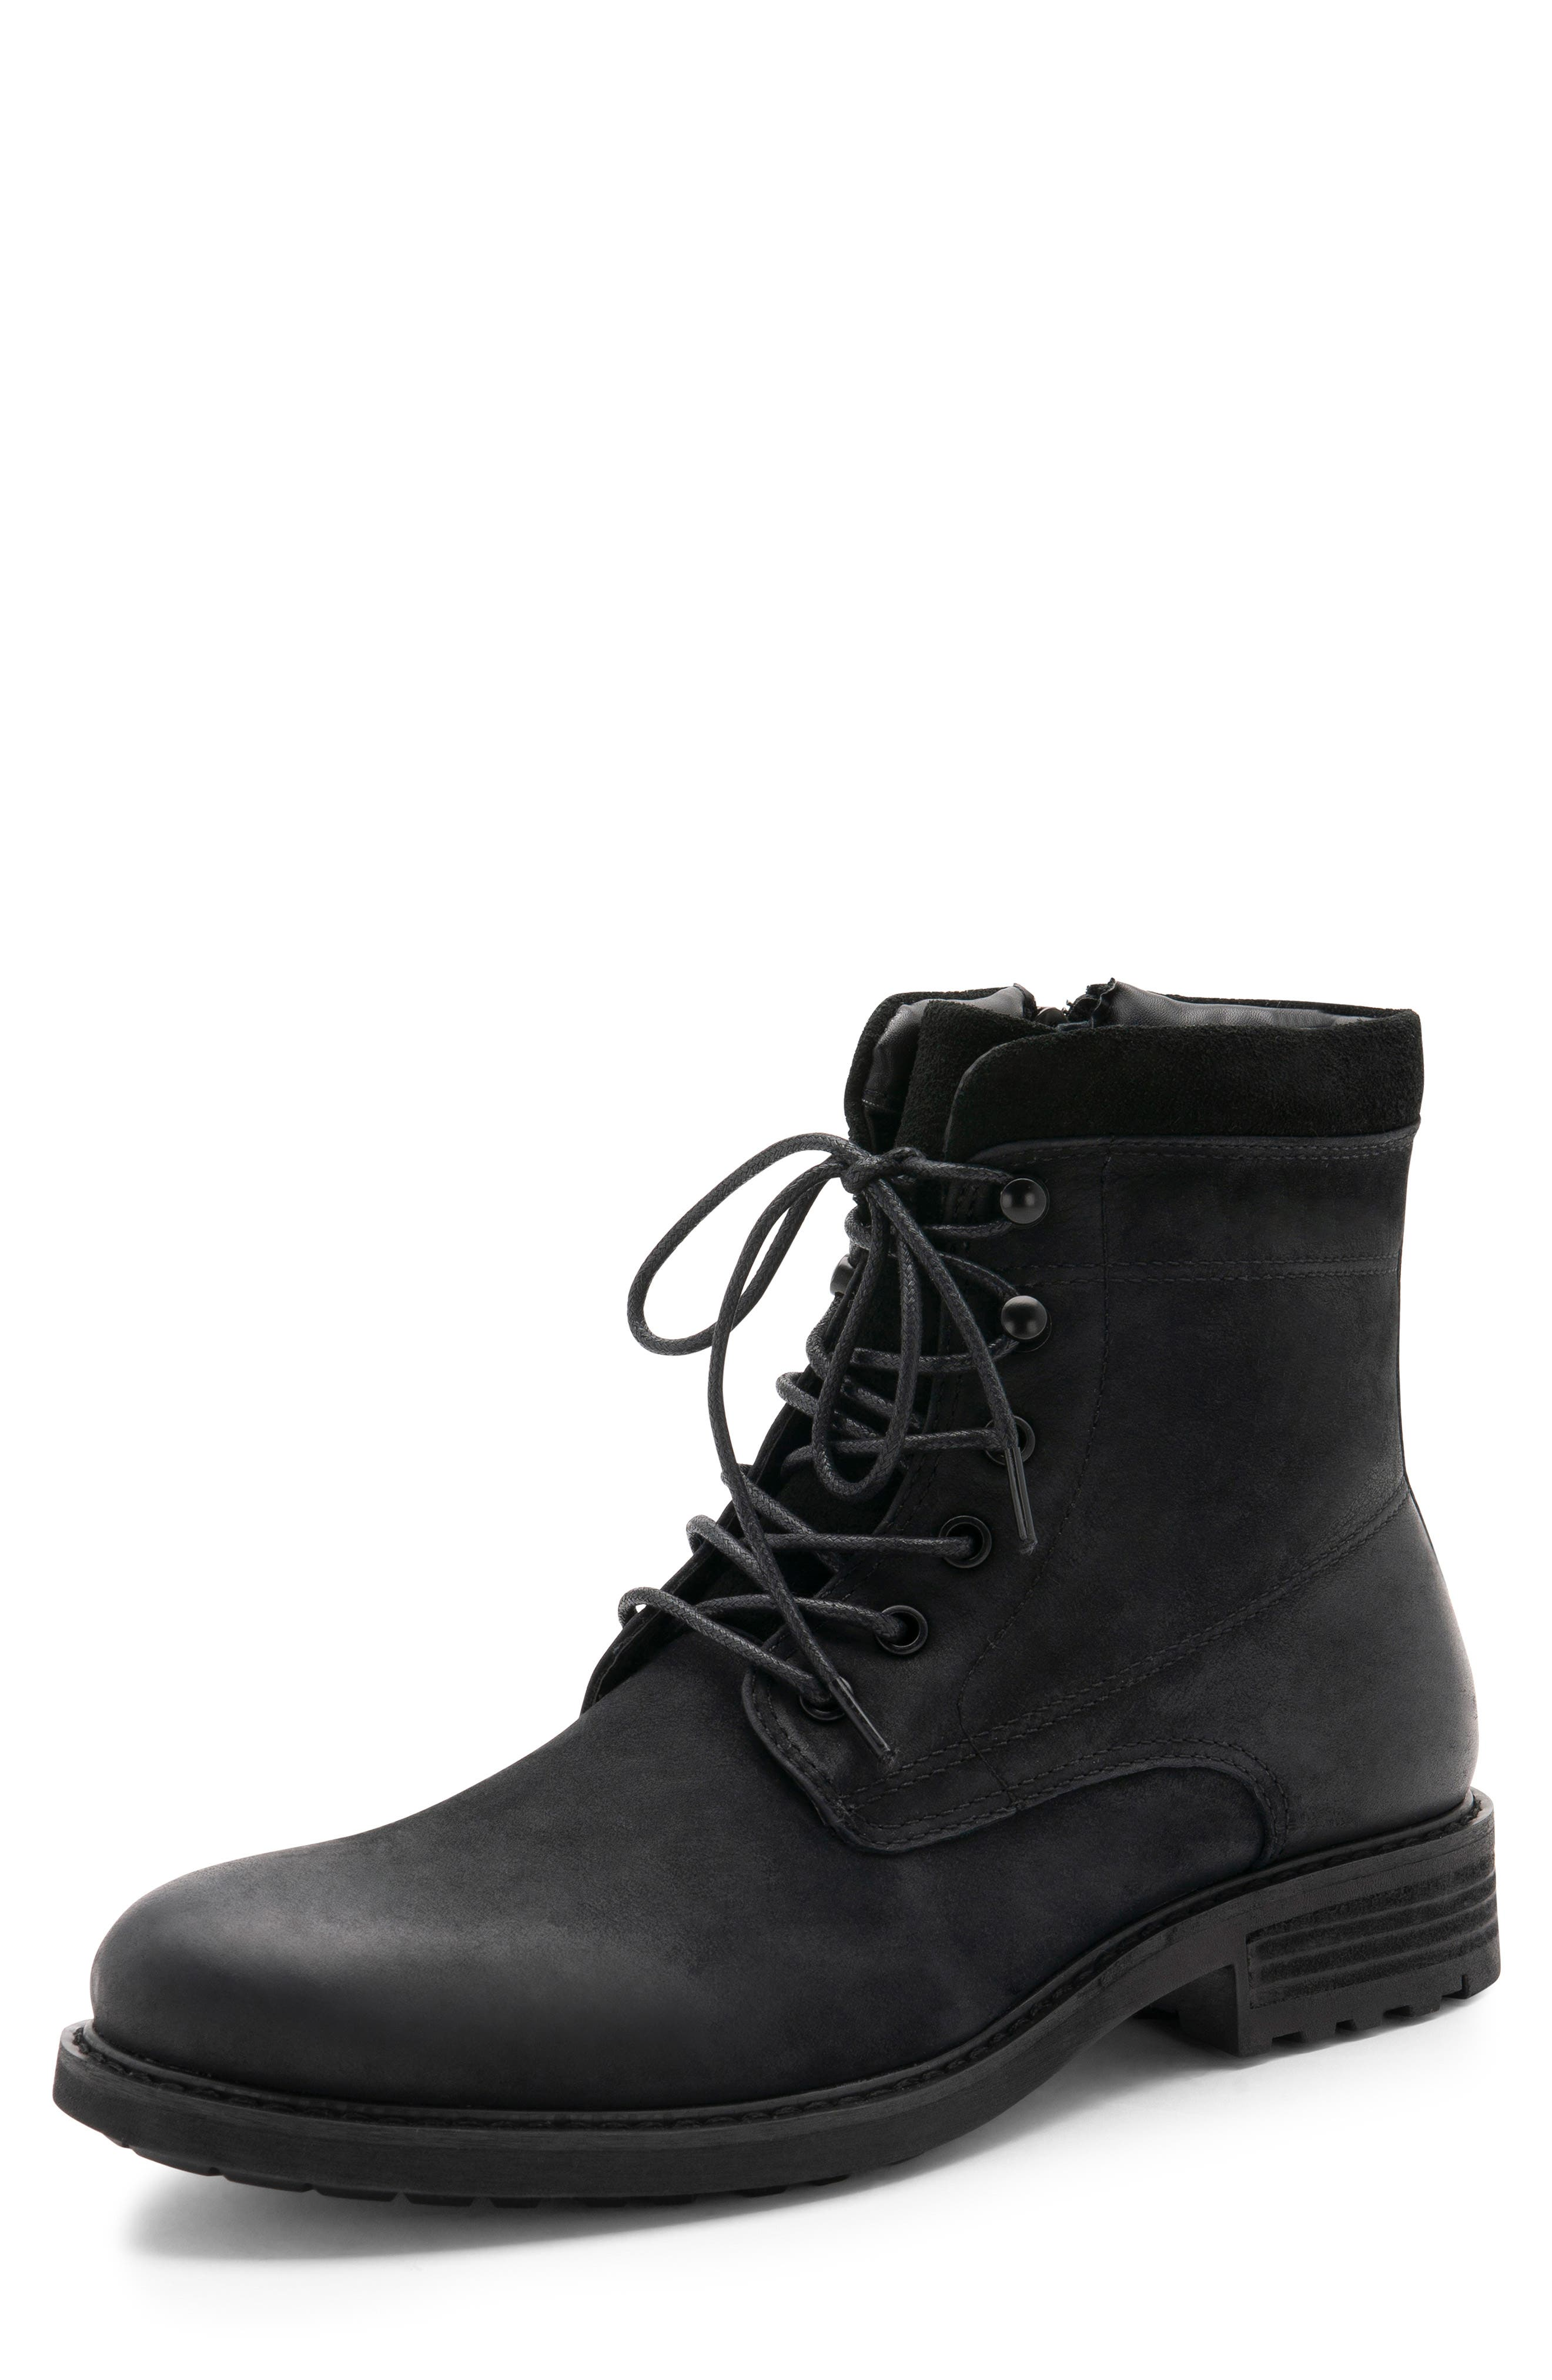 BLONDO, Patton Waterproof Plain Toe Boot, Alternate thumbnail 7, color, BLACK NUBUCK